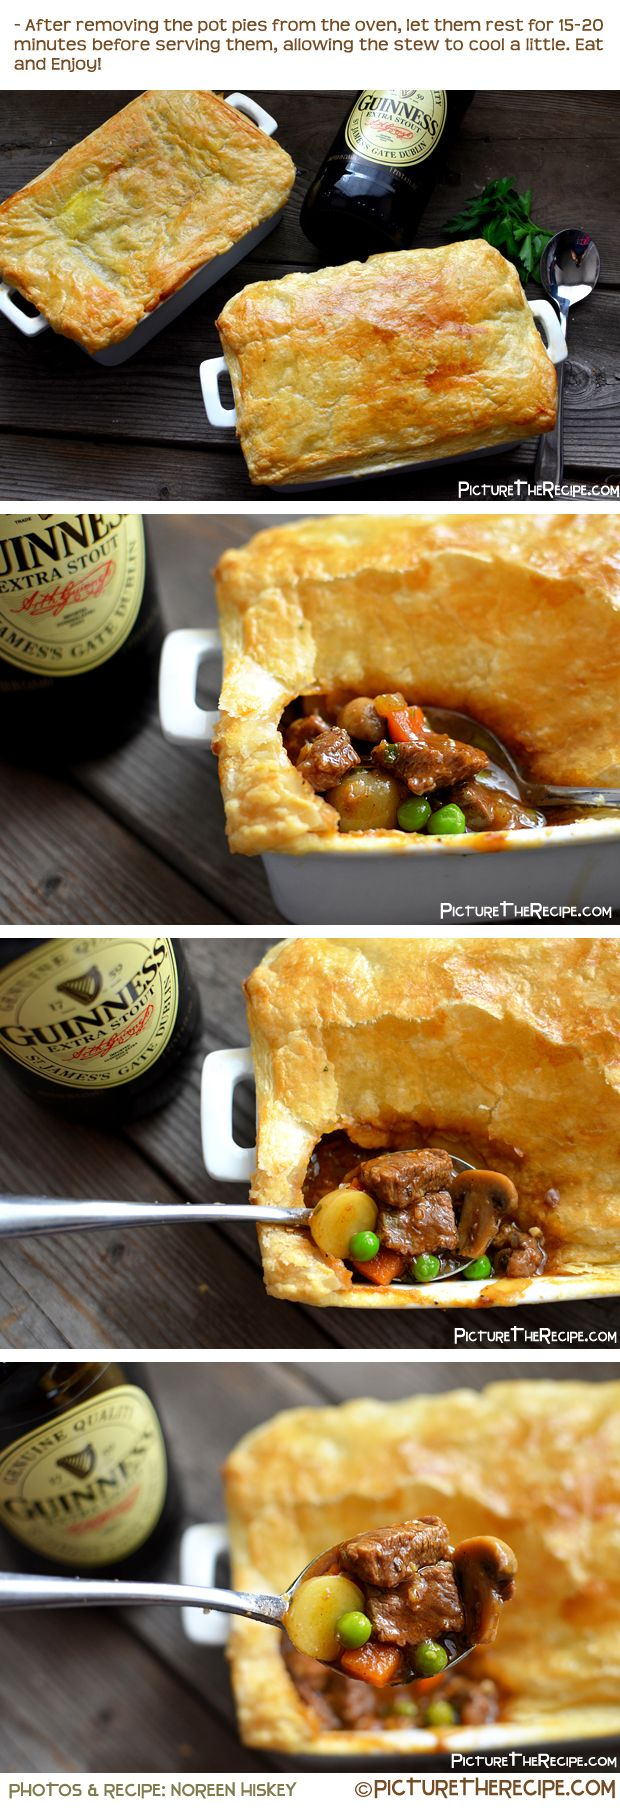 Beef Pot Pie. Minus the beer. Added extra broth. Used THRIVE food for all veggies except potatoes. Put a butter pie crust on top. Absolutely delicious!!!! Definitely becoming a regular rotation. Can be made with all food storage ingredients, too. Very very good!